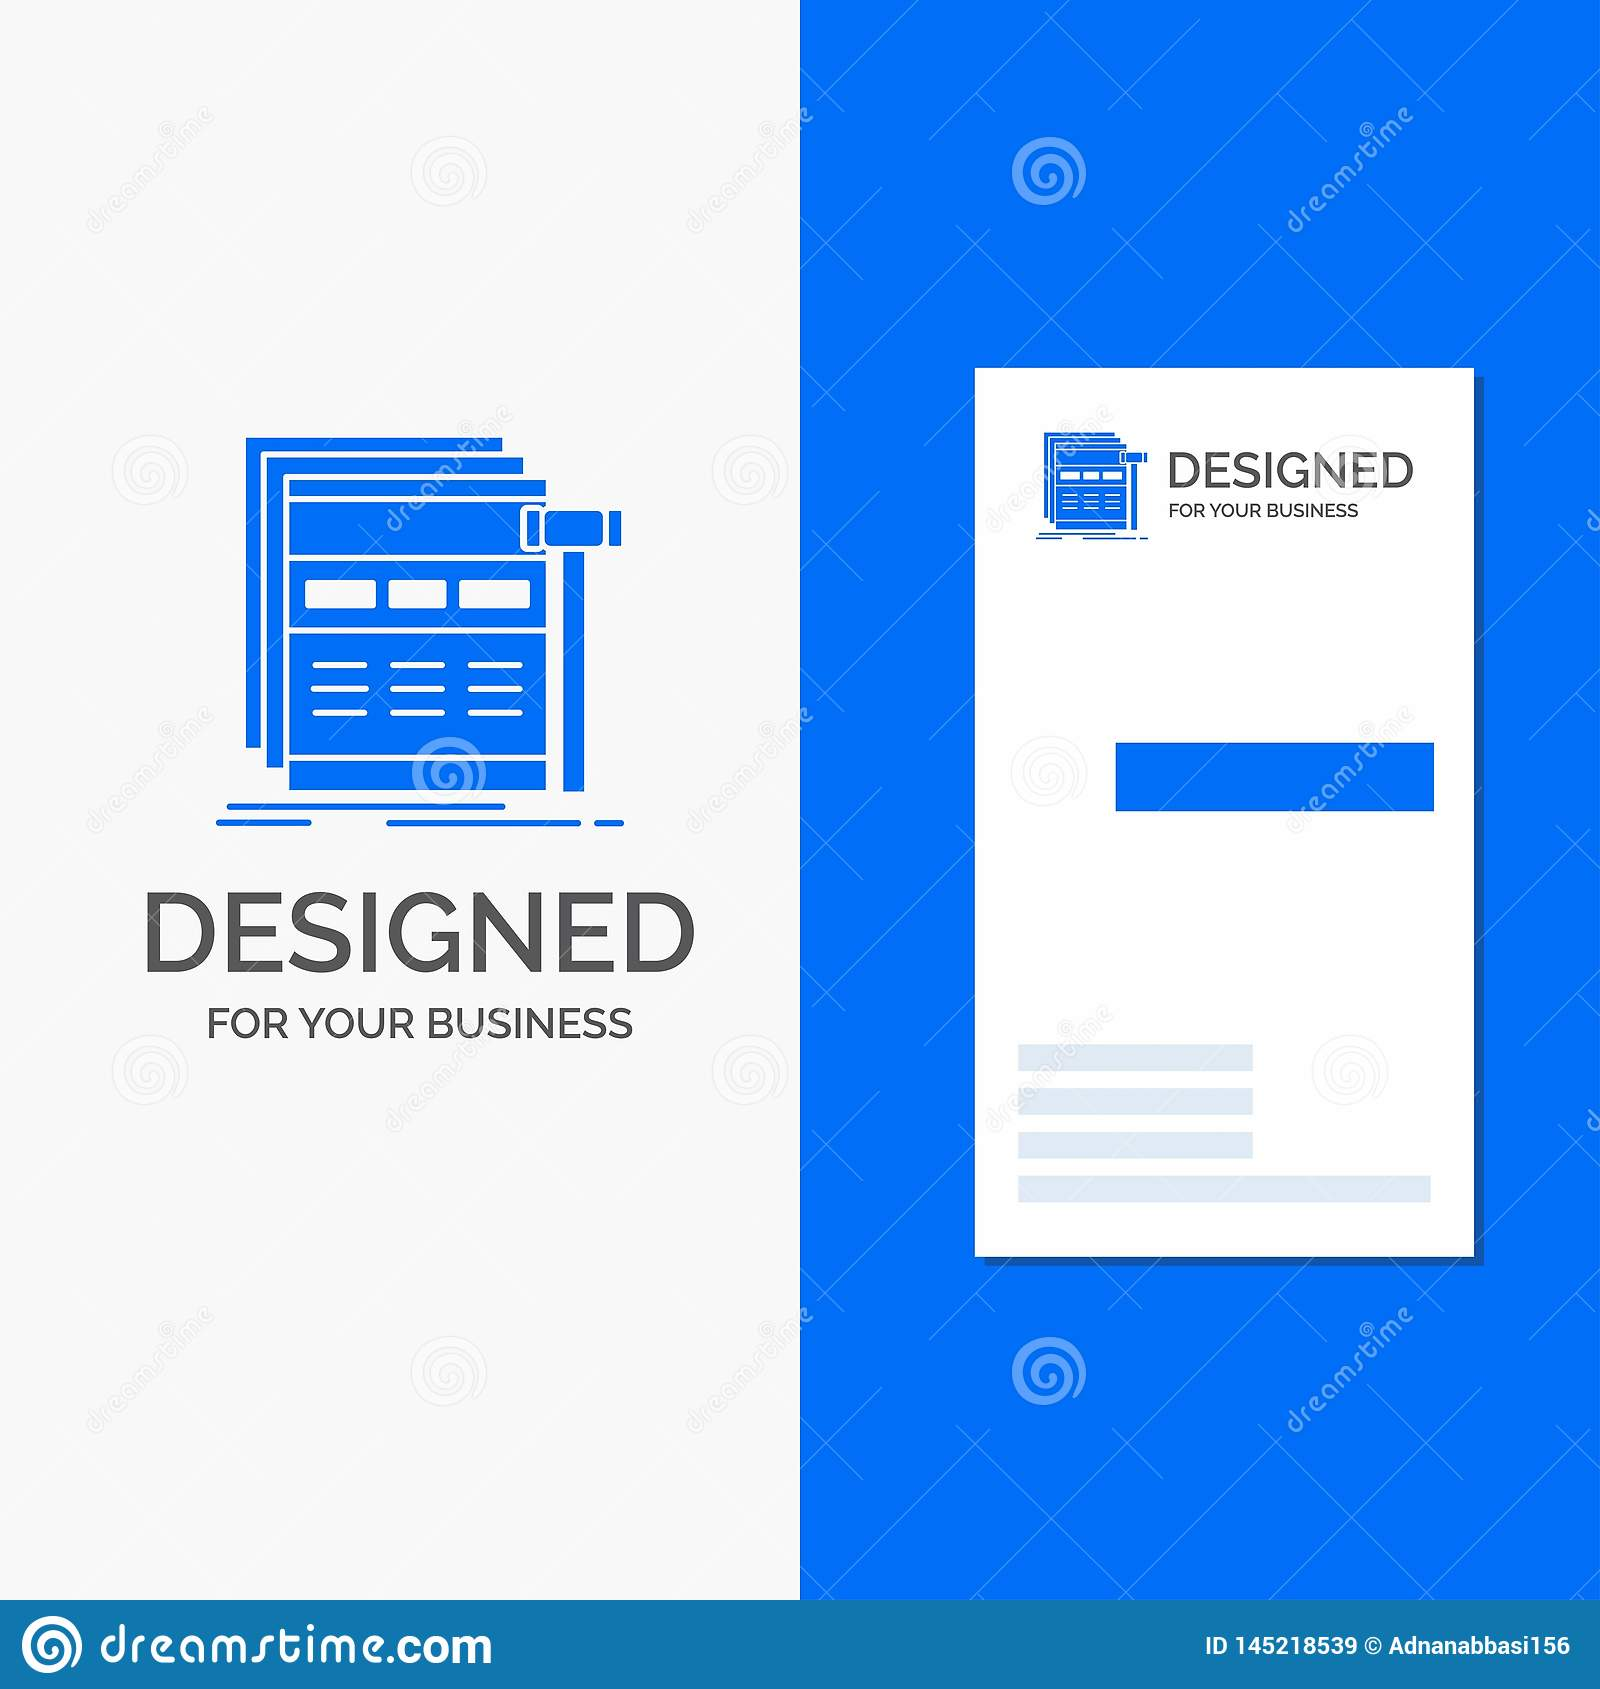 Business Logo for Internet, page, web, webpage, wireframe. Vertical Blue Business / Visiting Card template